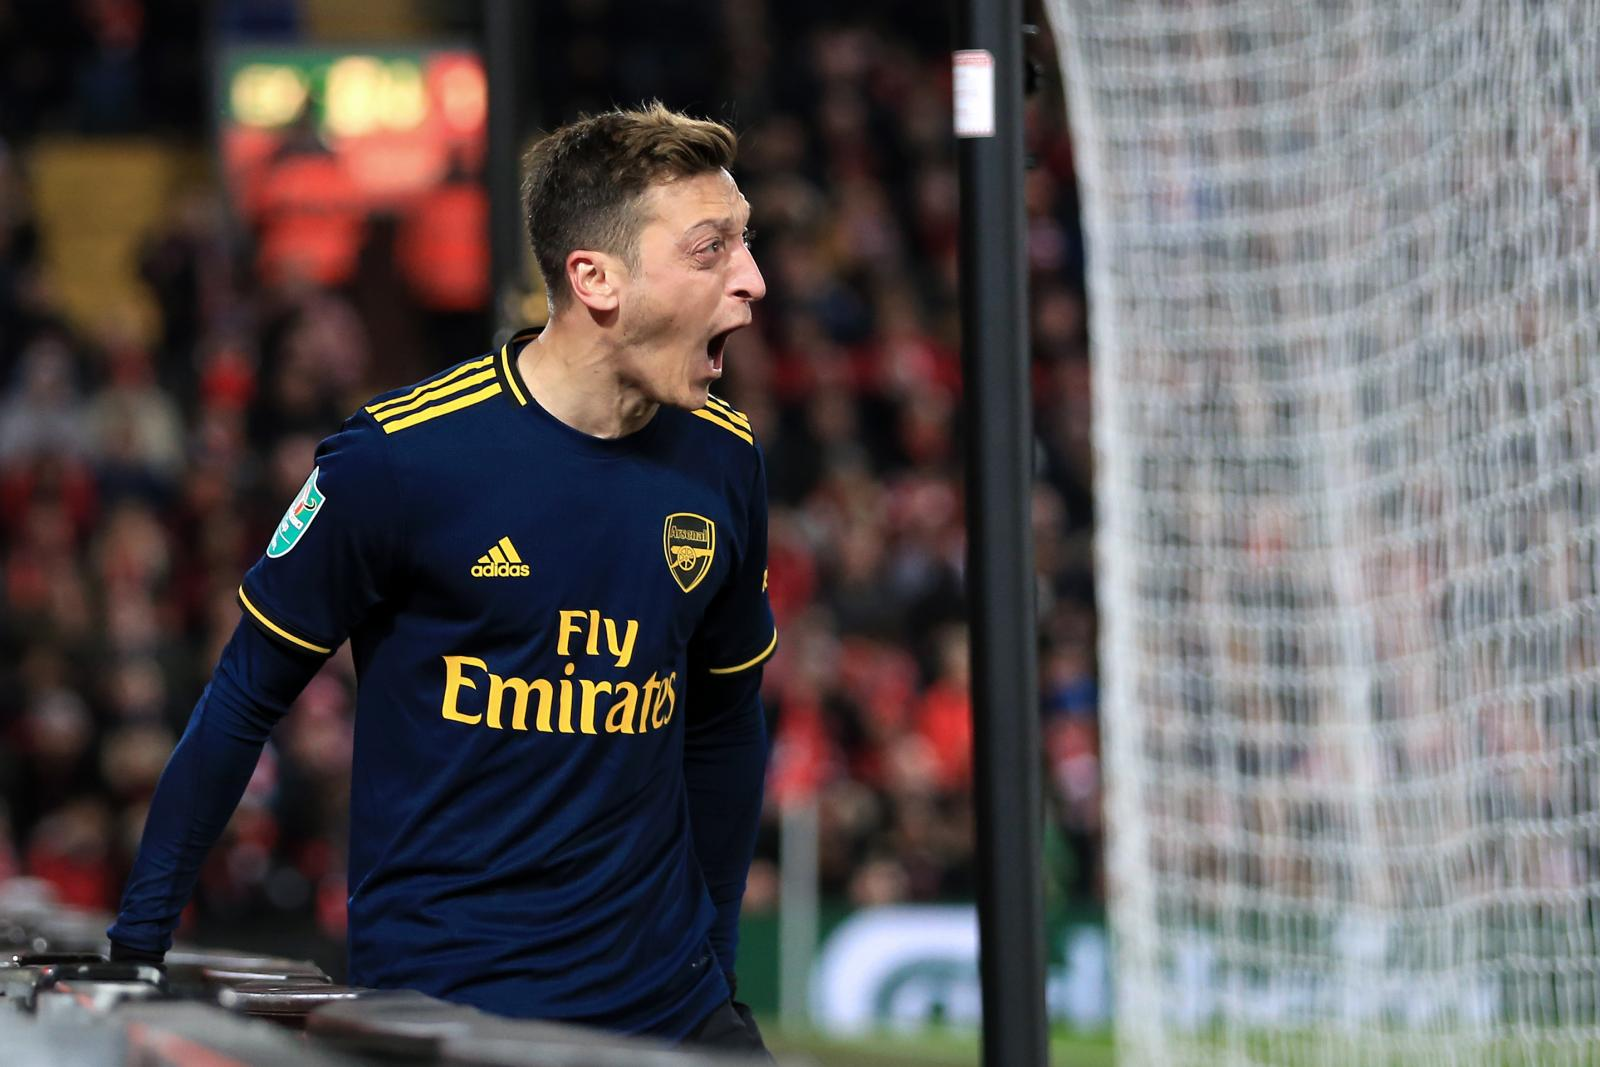 Ozil: Fenerbache set to sign Arsenal midfielder according to reports from Turkey